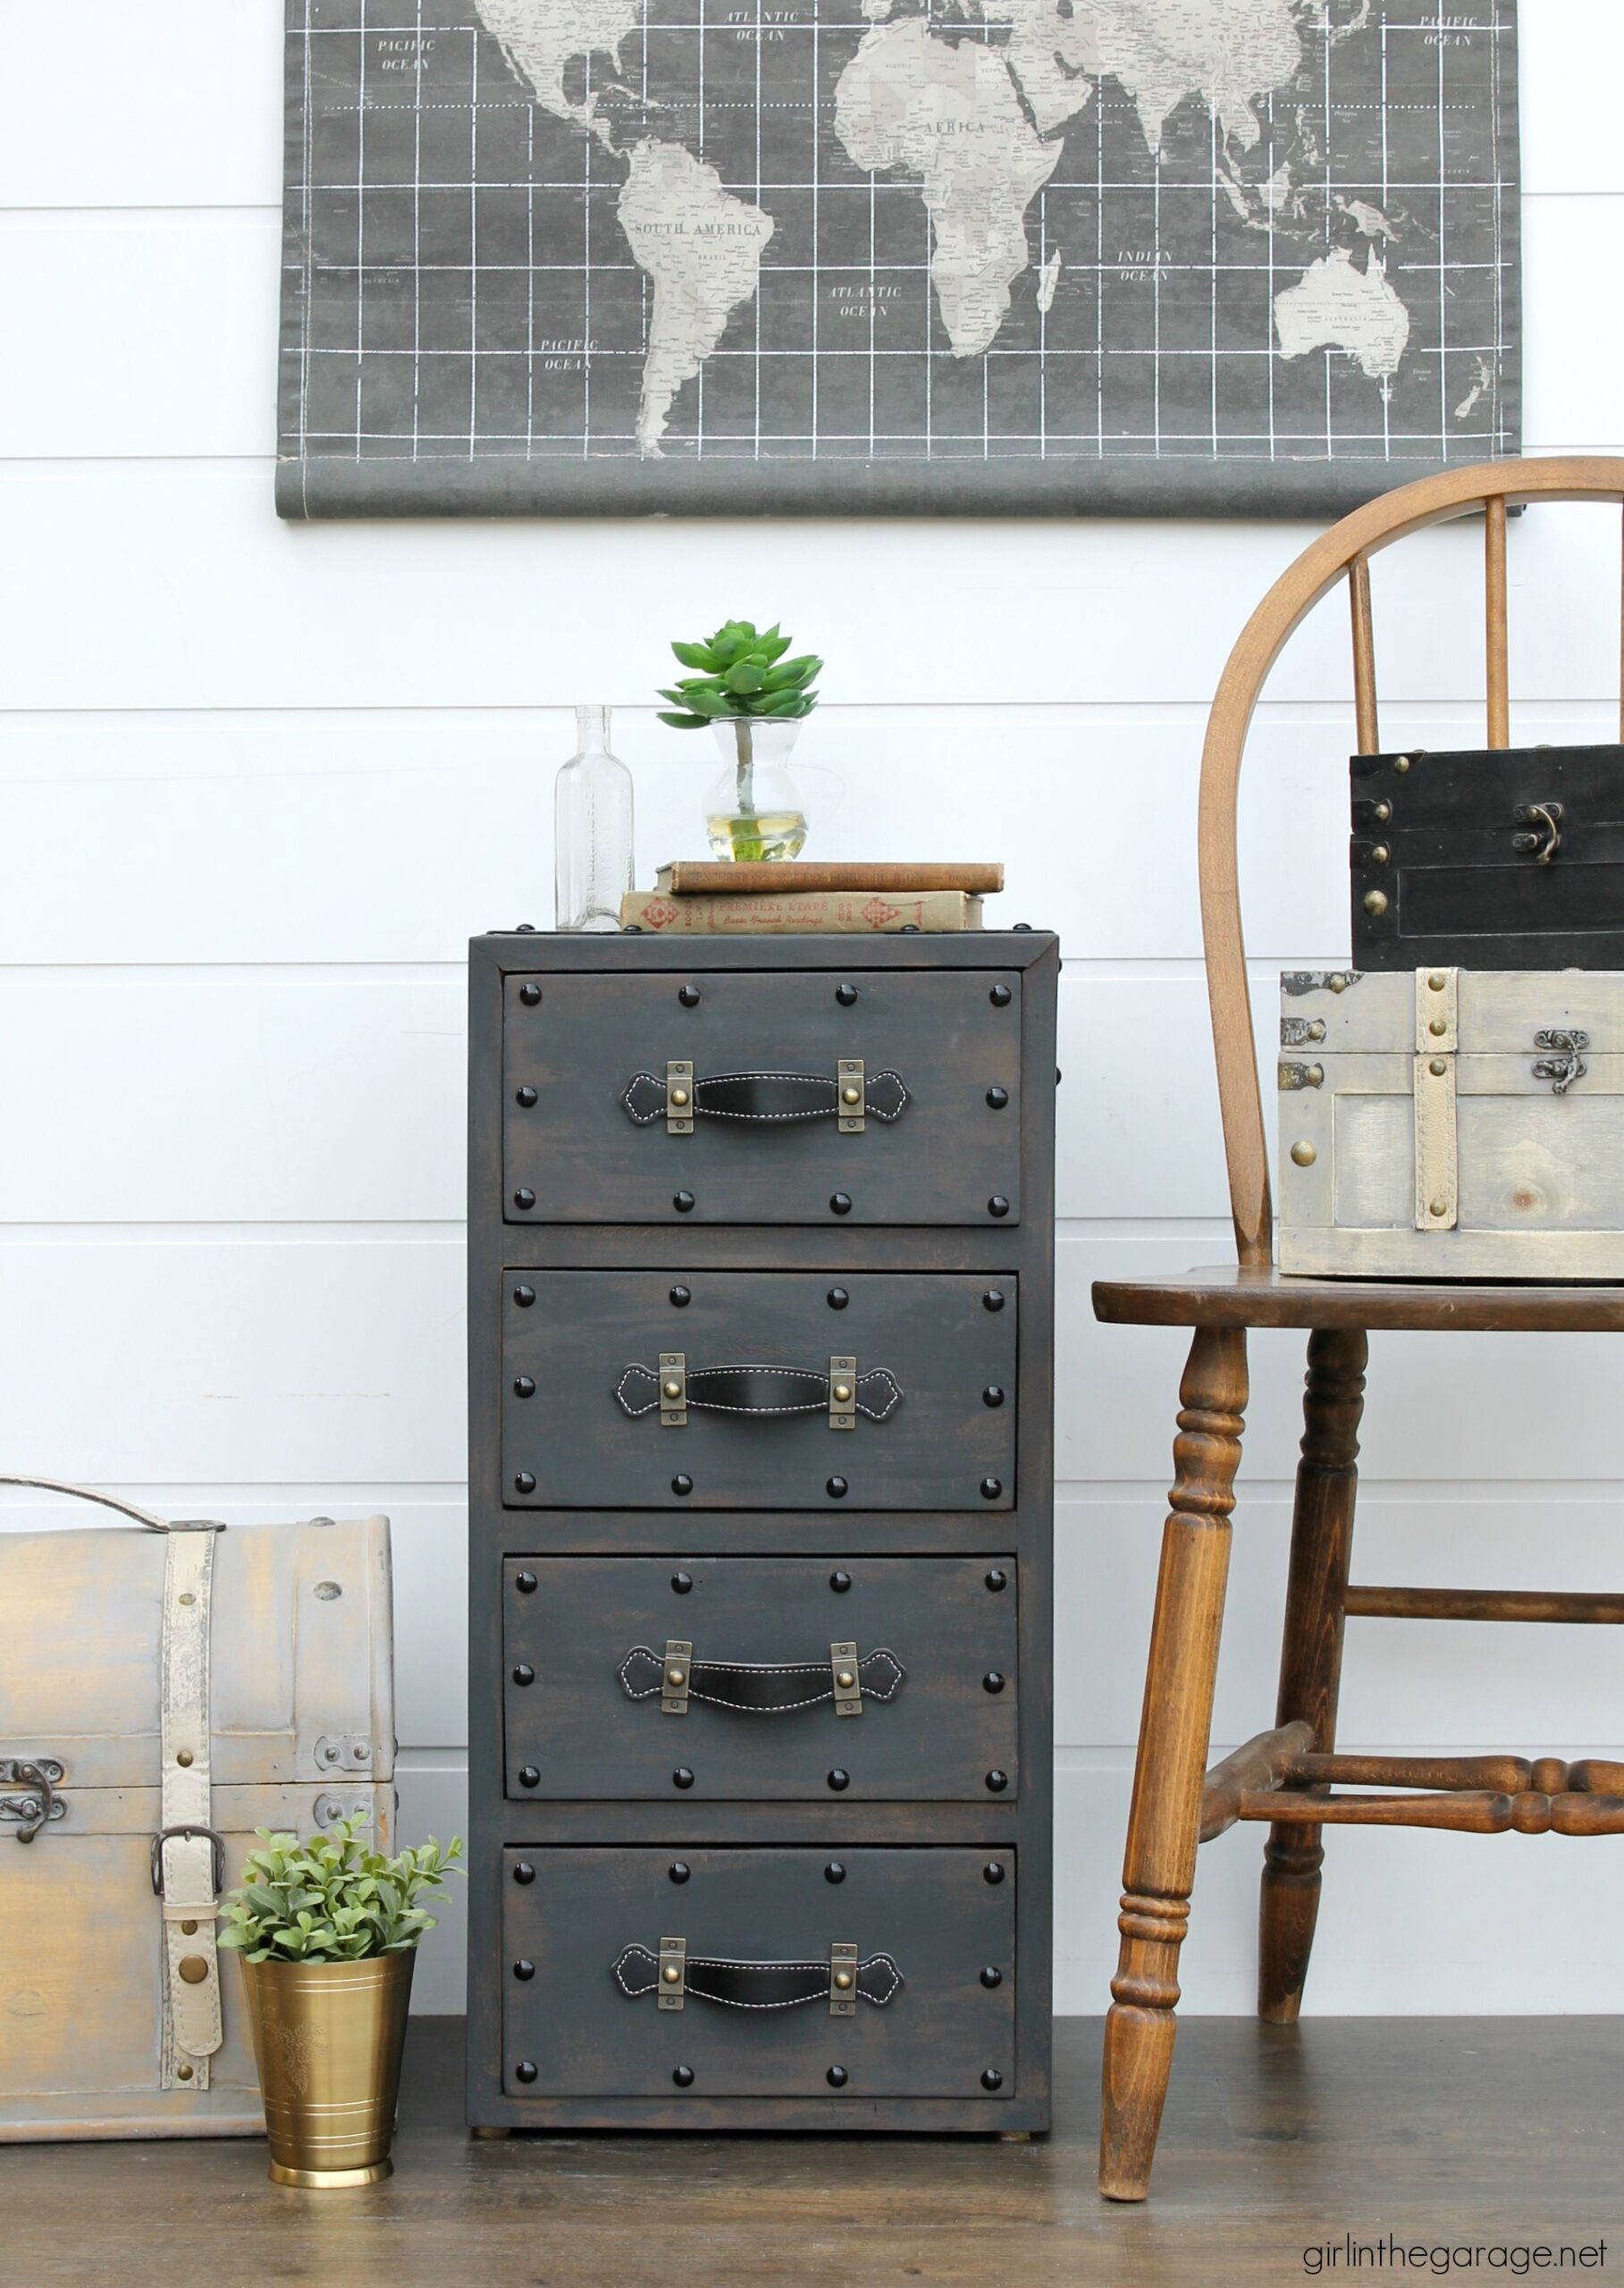 Painted faux antique steamer trunk - Girl in the Garage